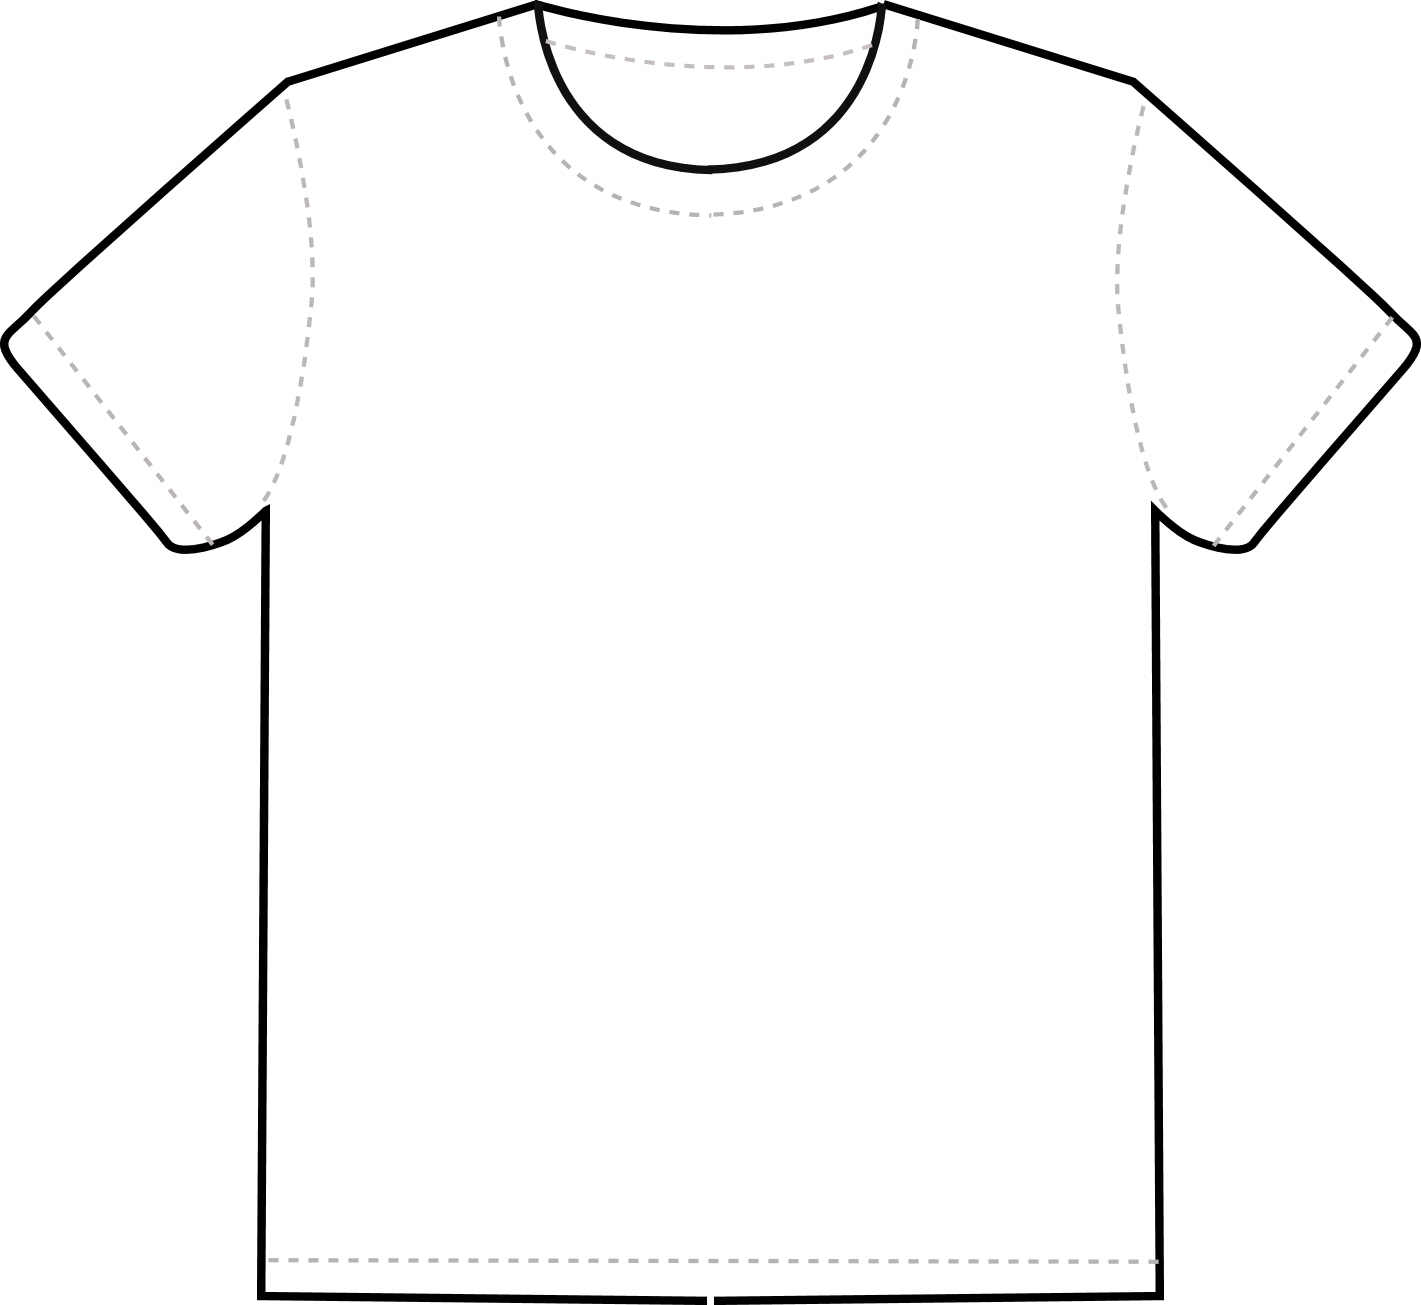 Tshirtt black and white clipart image royalty free stock Free T Shirt Template Printable, Download Free Clip Art ... image royalty free stock